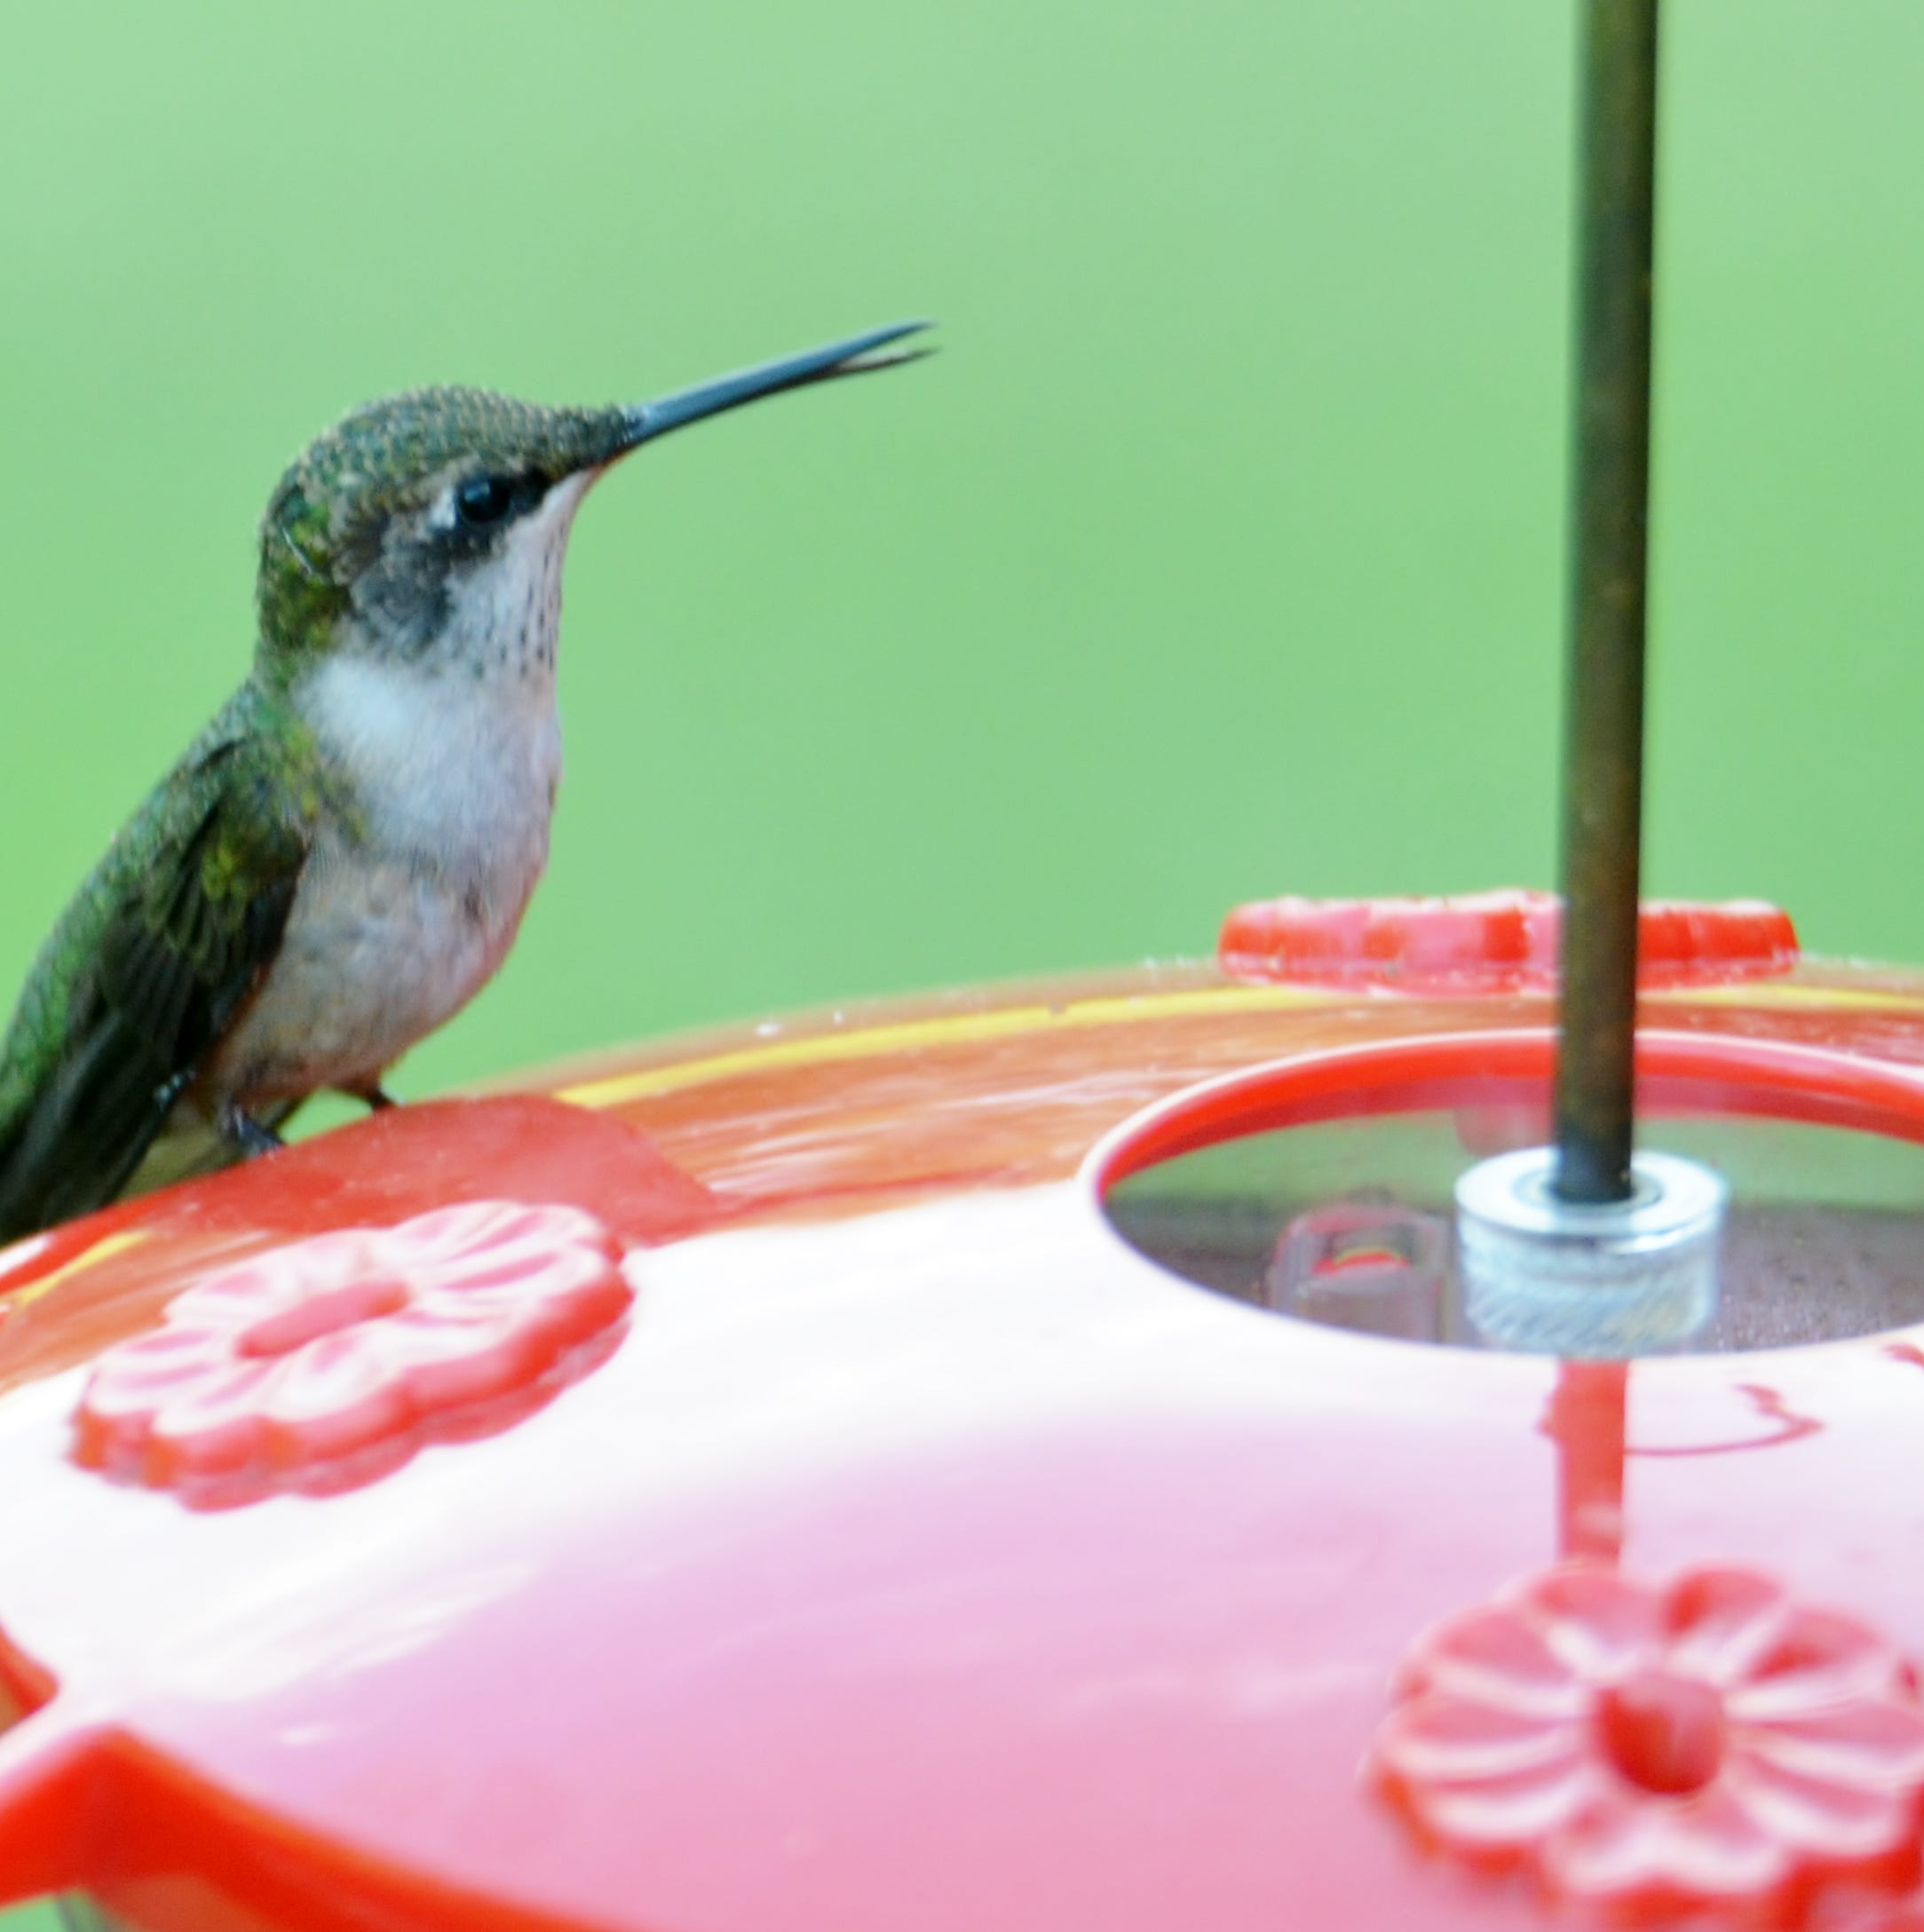 The flight of the hummingbird: How they get to Pa. and how fast their wings actually move